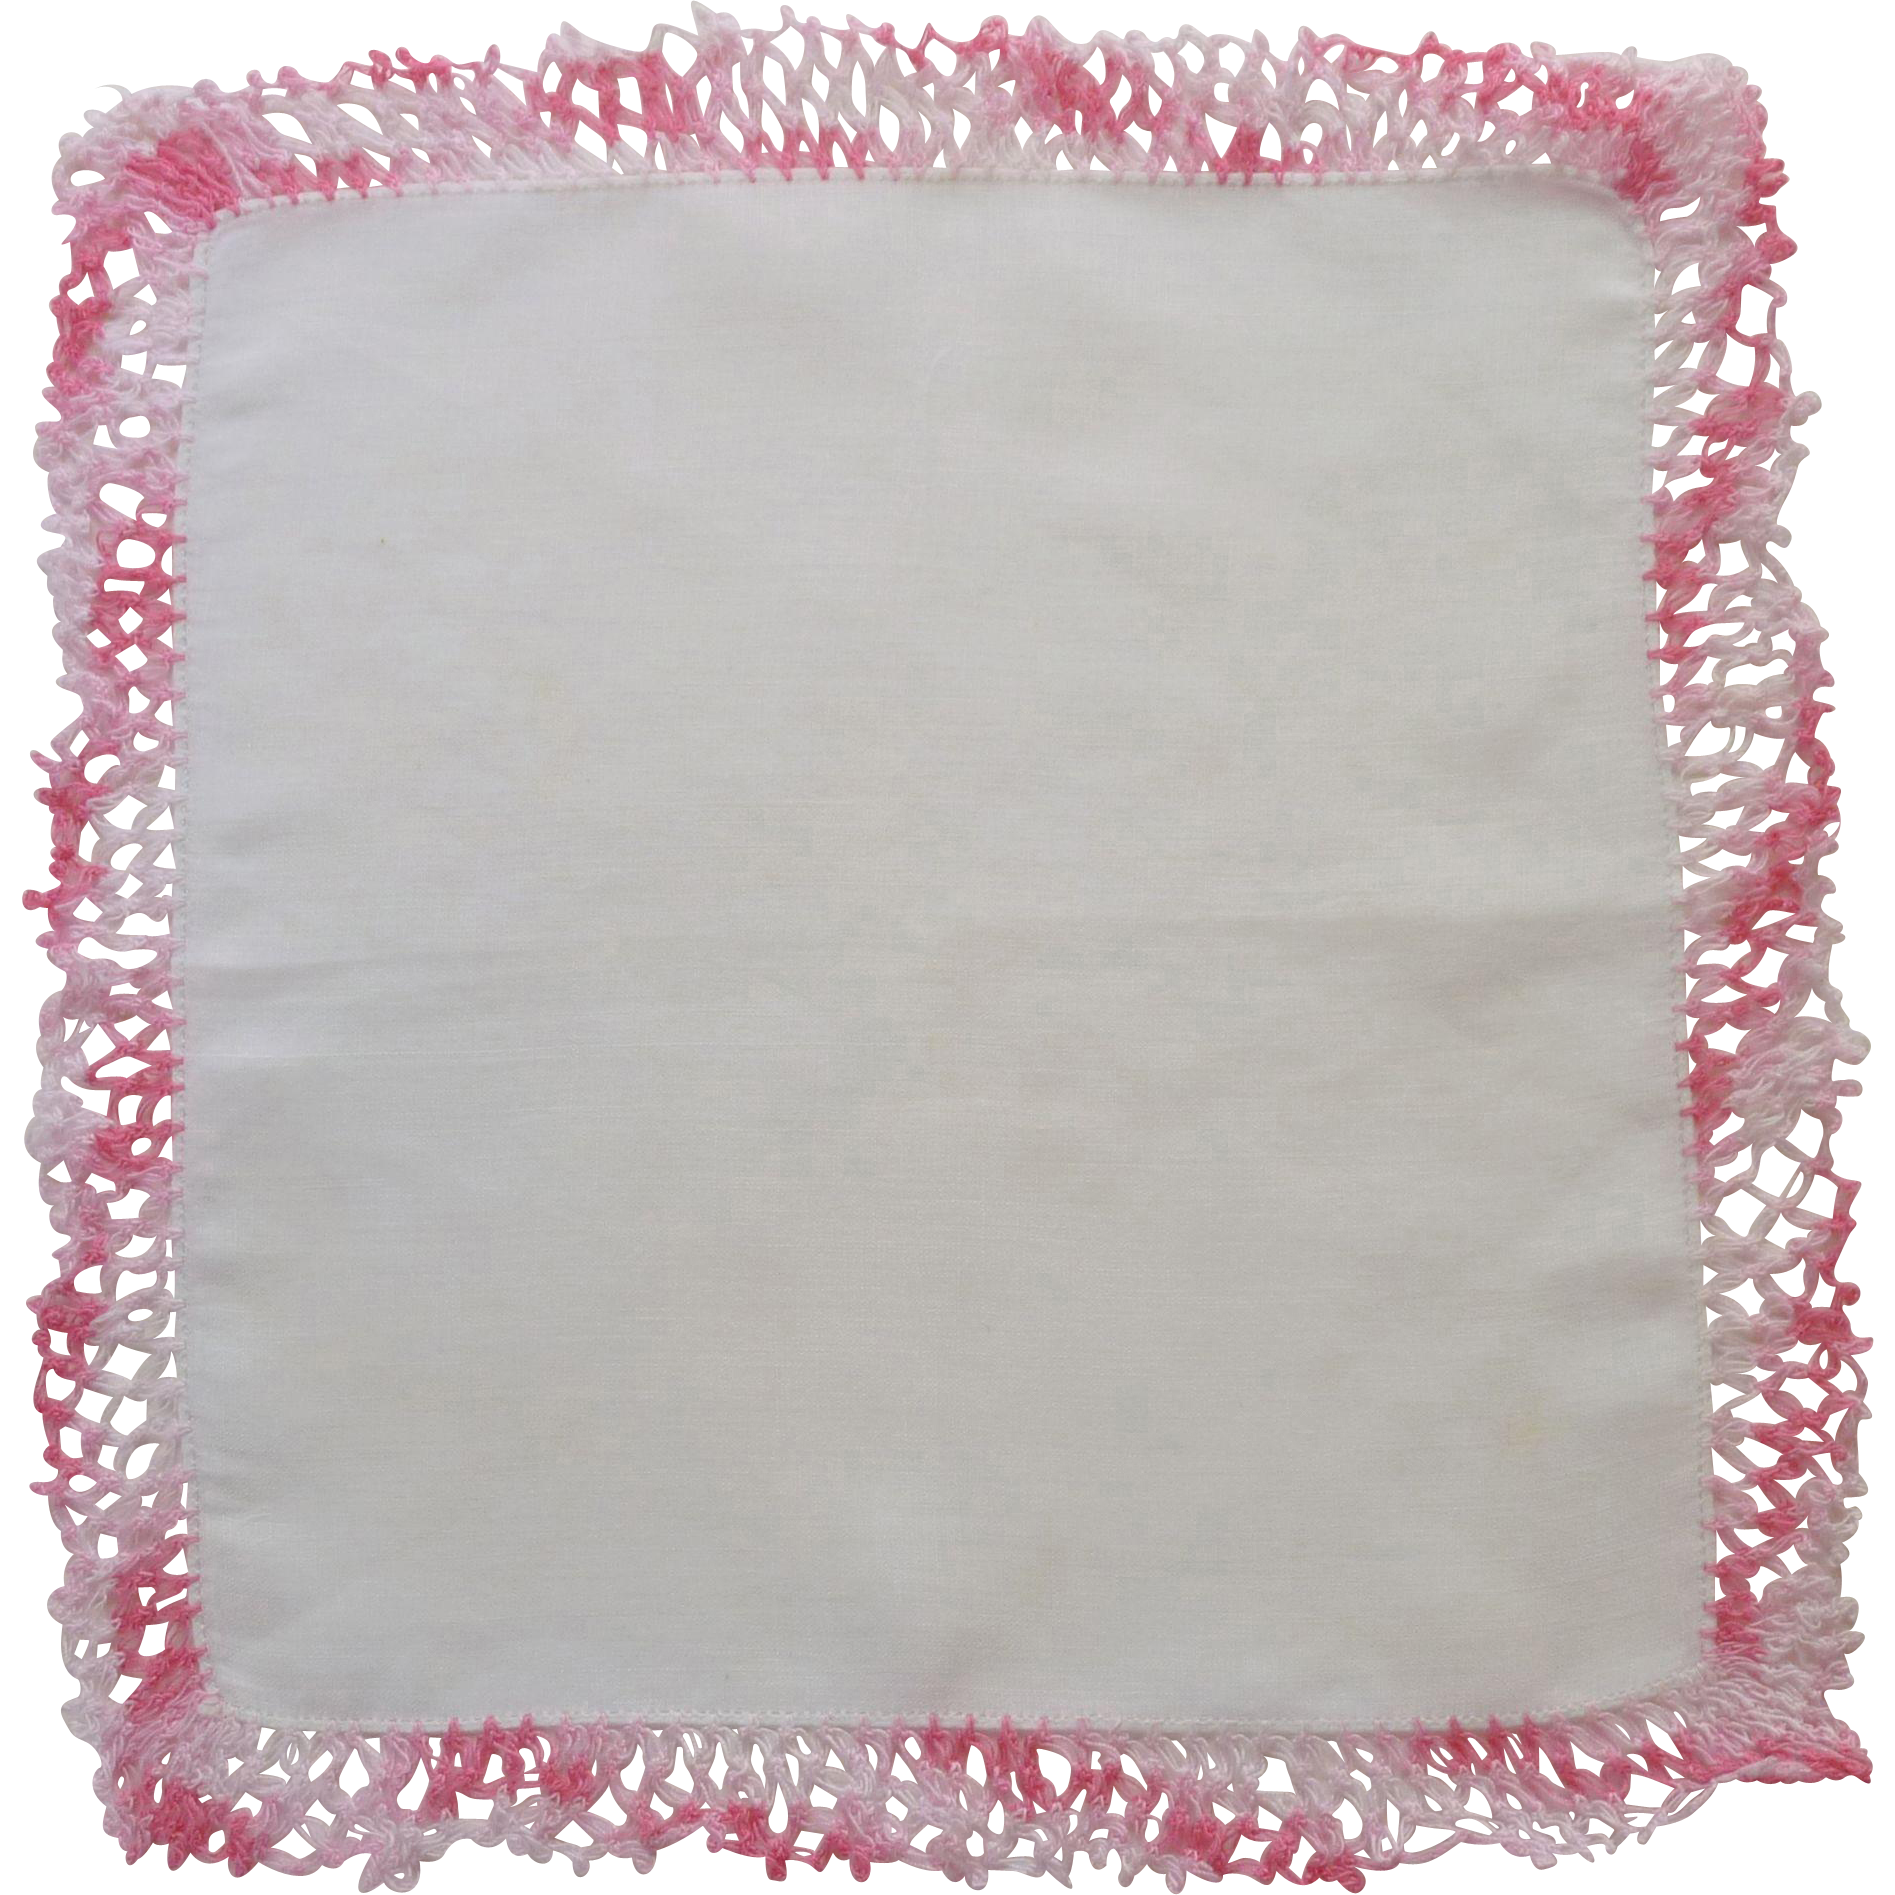 Variegated Pink Crochet Lace Edged on White Handkerchief